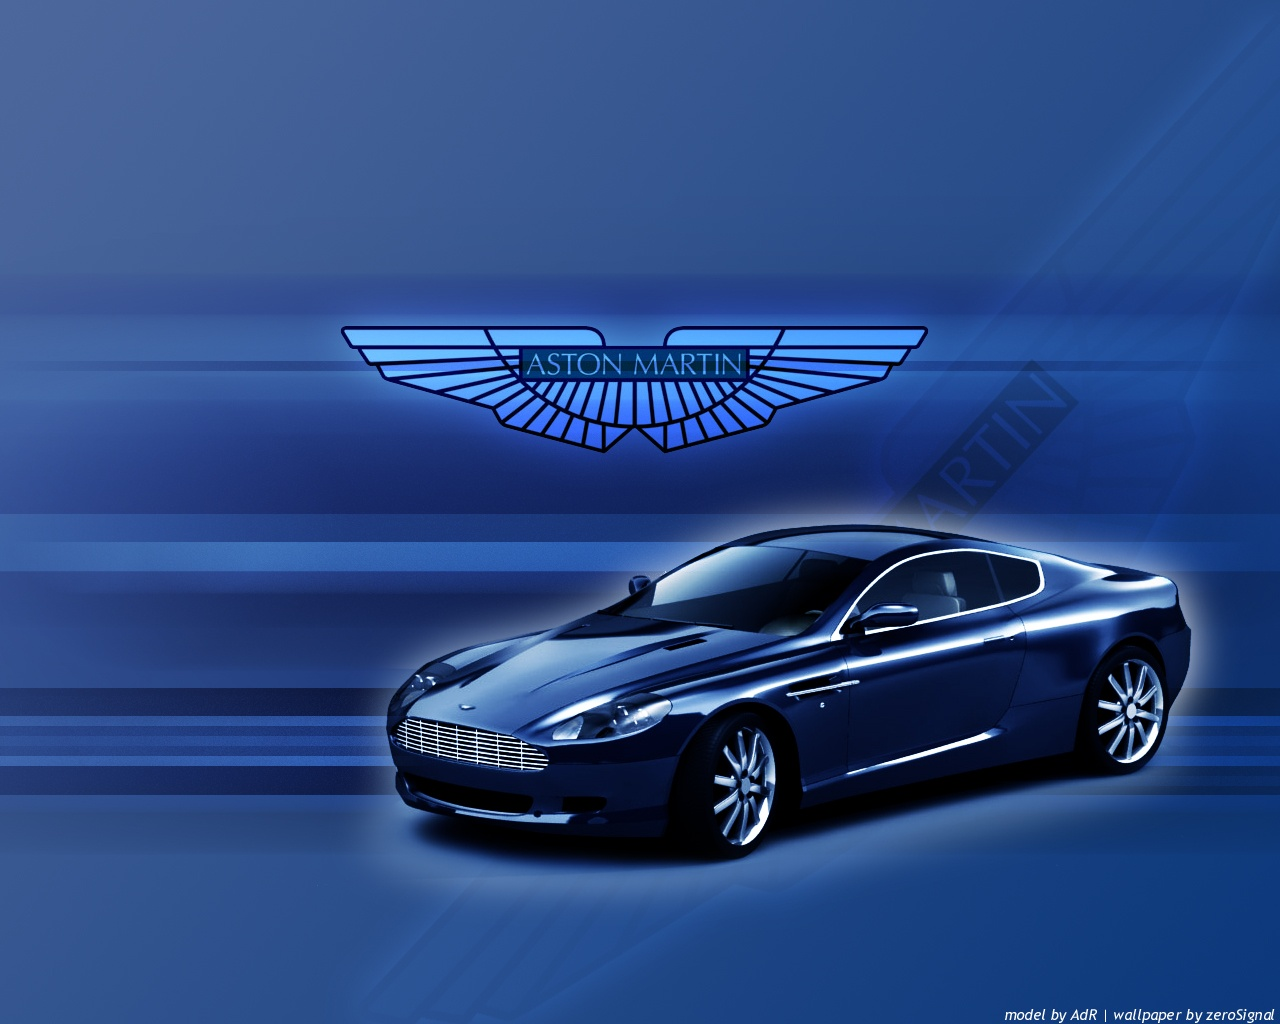 wallpaper Aston Martin Wallpapers Aston martin concept Car Aston 1280x1024